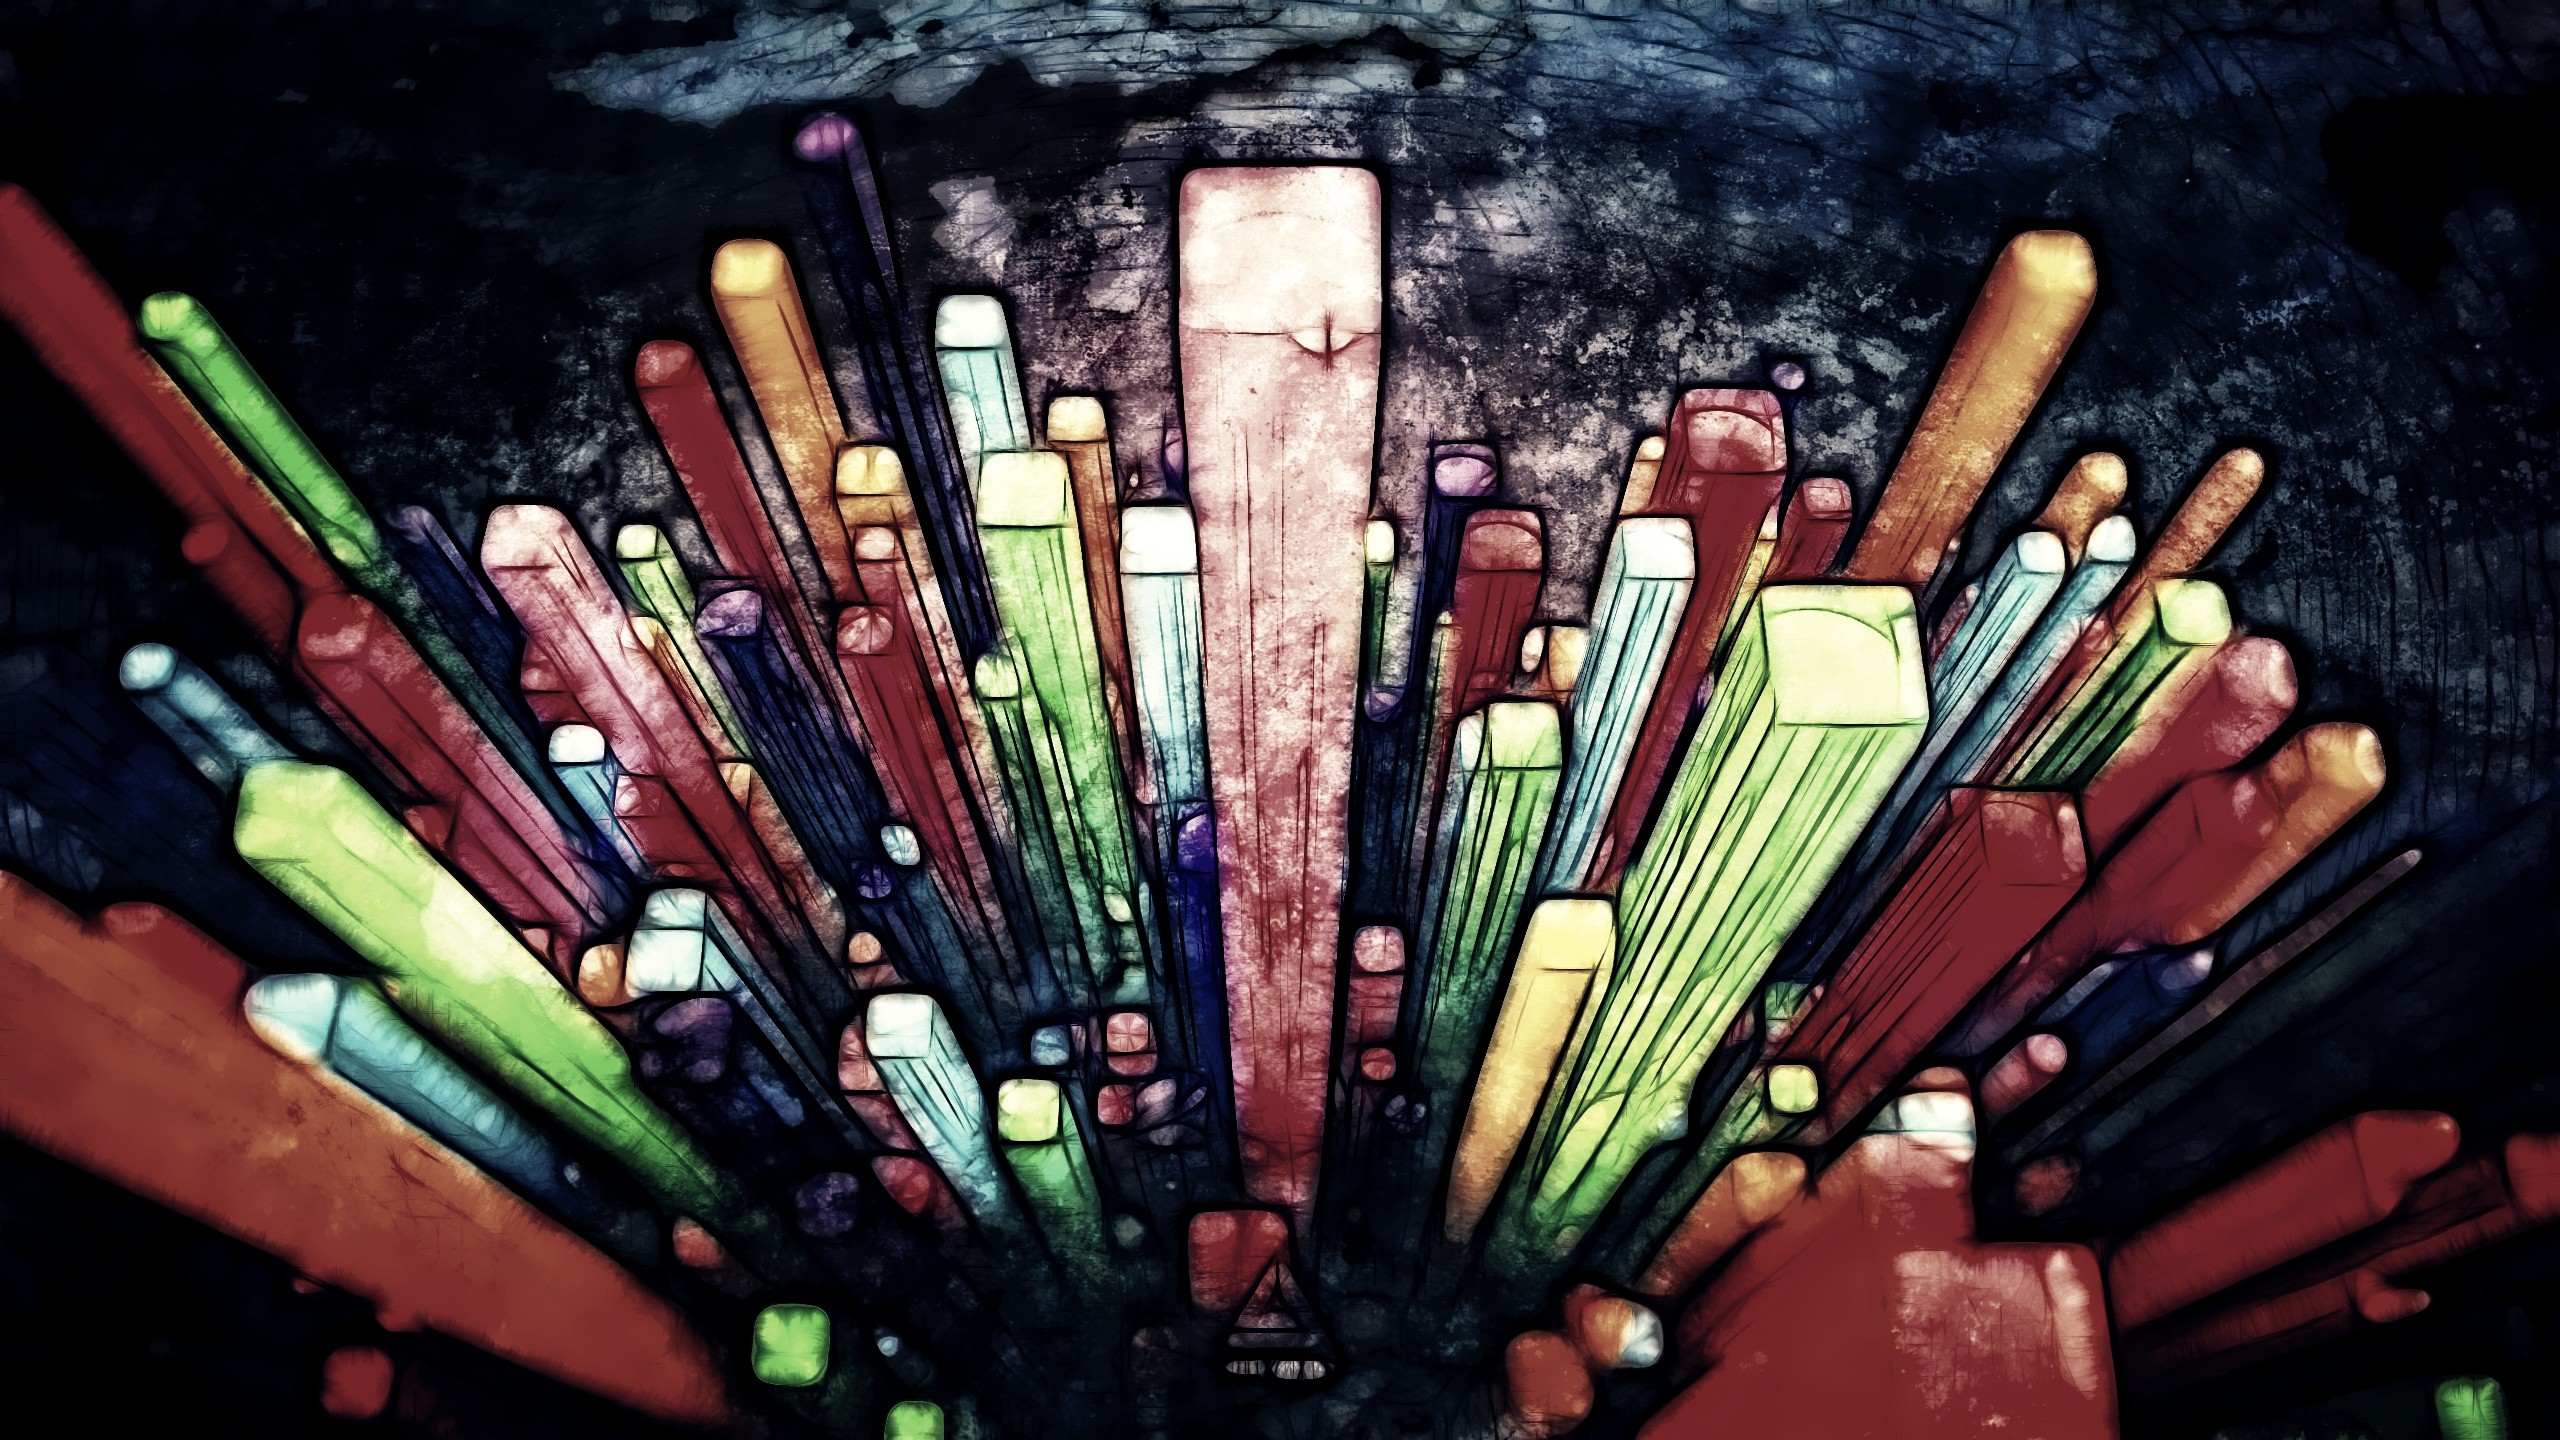 artwork lacza colorful abstract geometry dark surreal